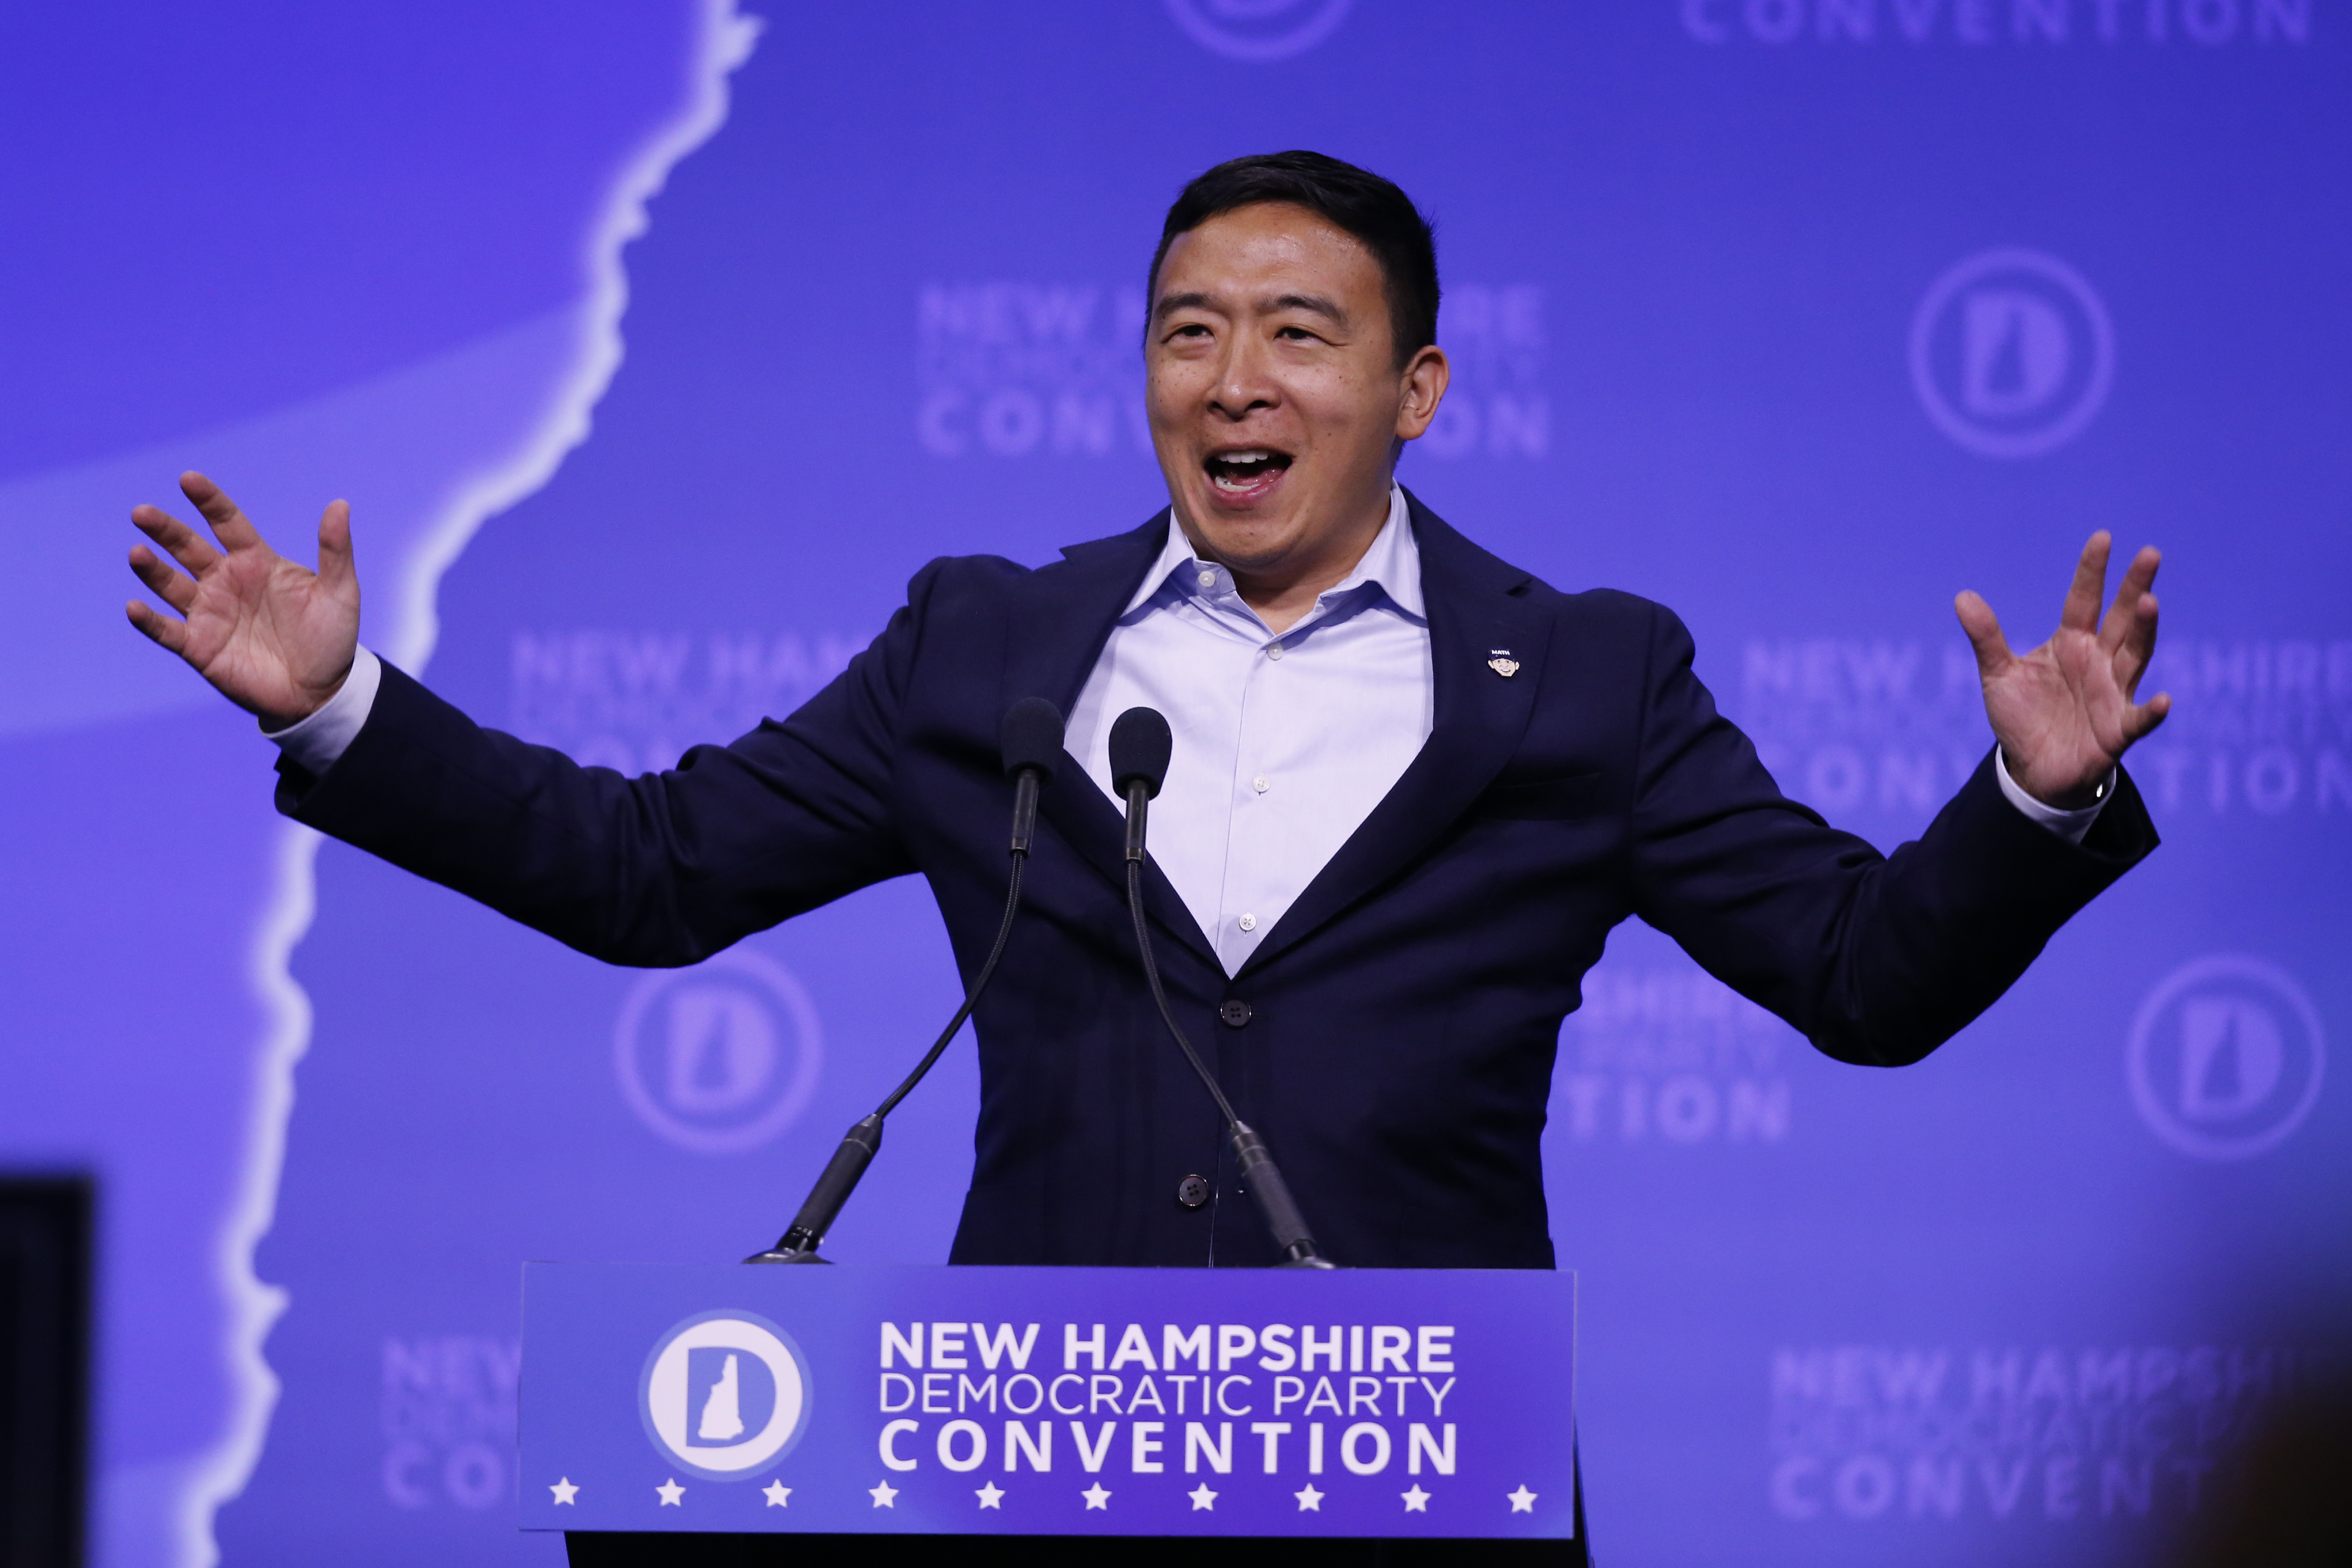 PolitiFact: Andrew Yang revives debunked claim about Green